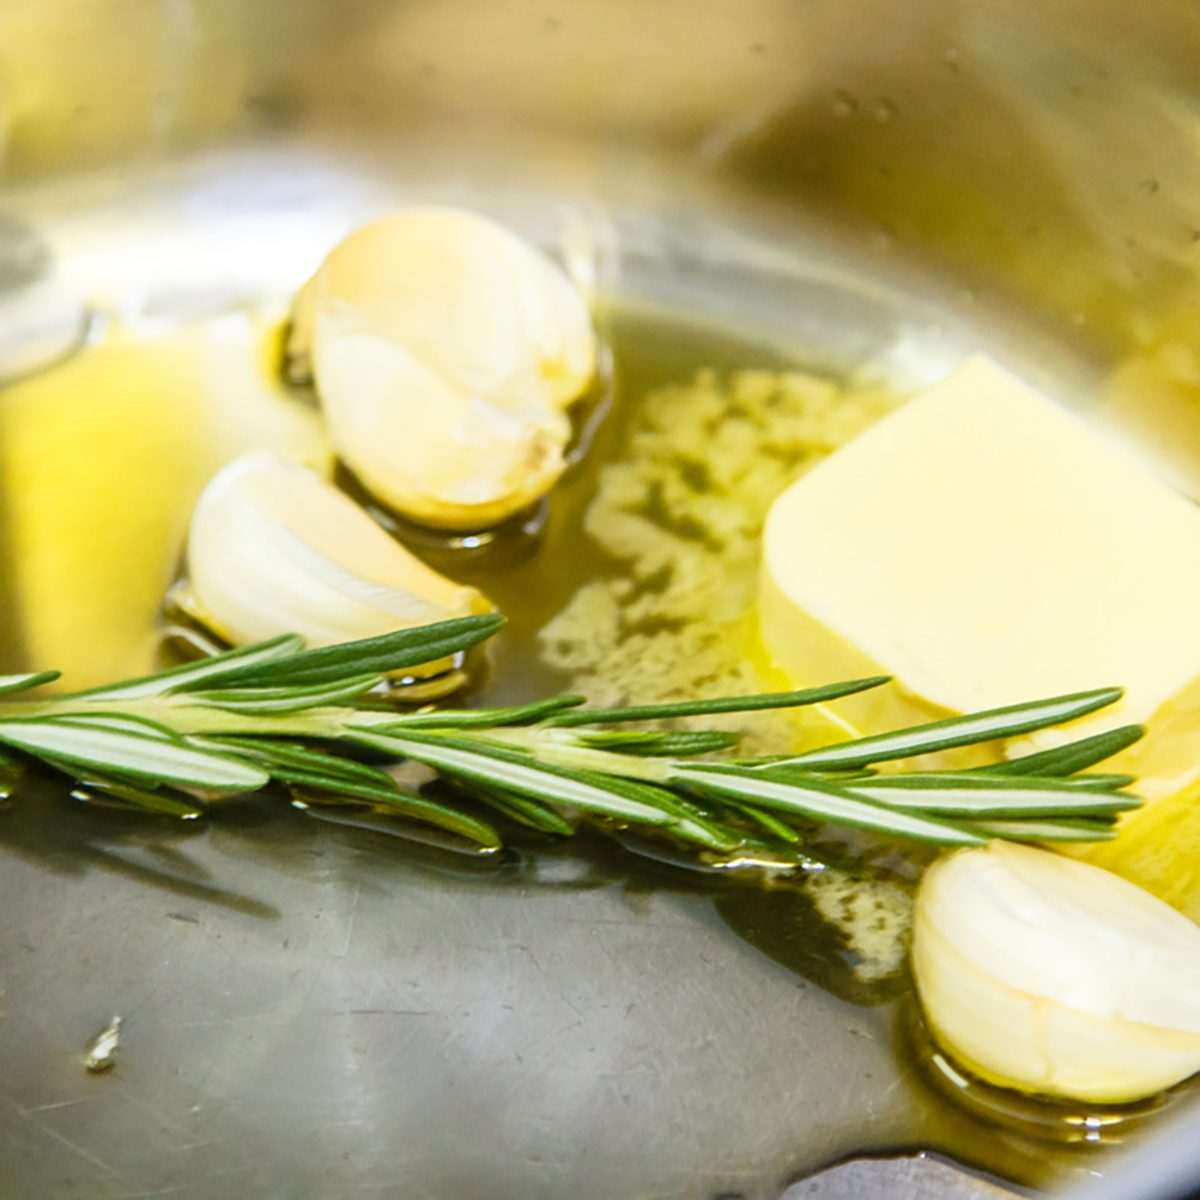 A sprig of rosemary and the garlic cloves are roasted with butter in the pan.